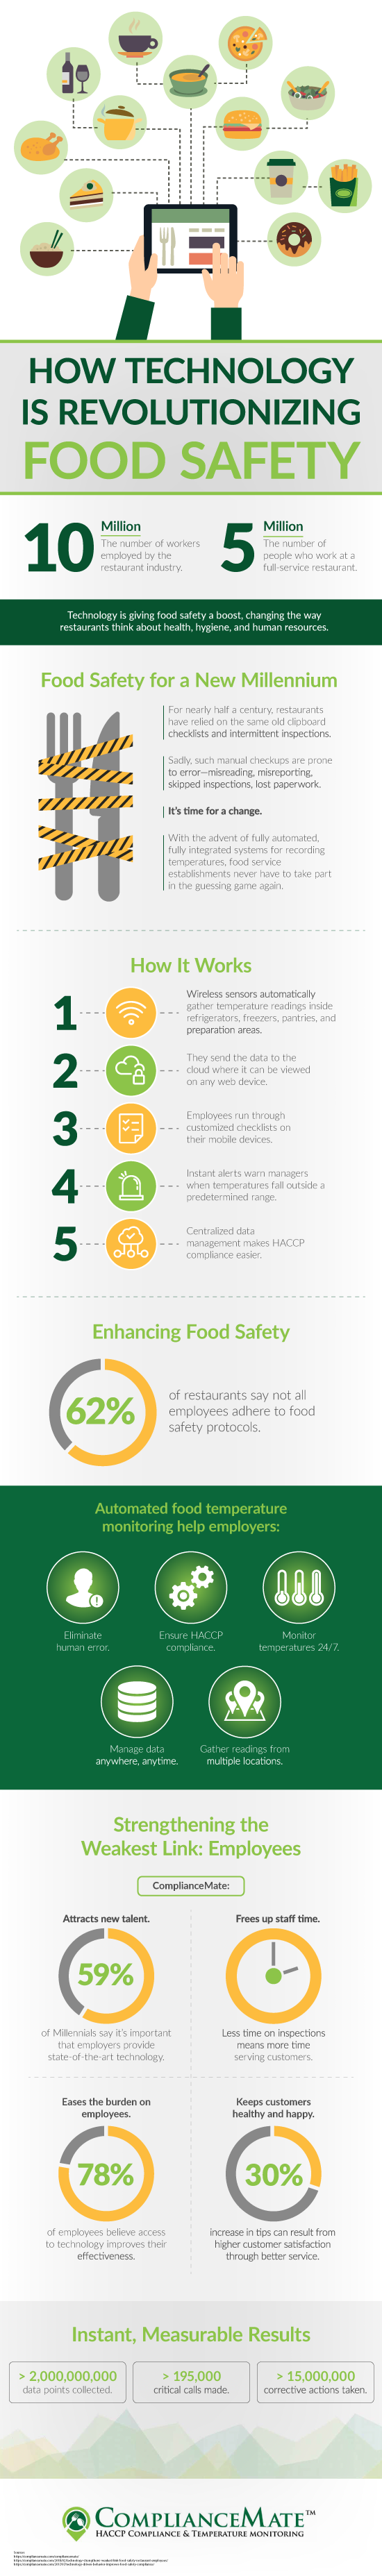 Infographic - How Technology is Revolutionizing Food Safety